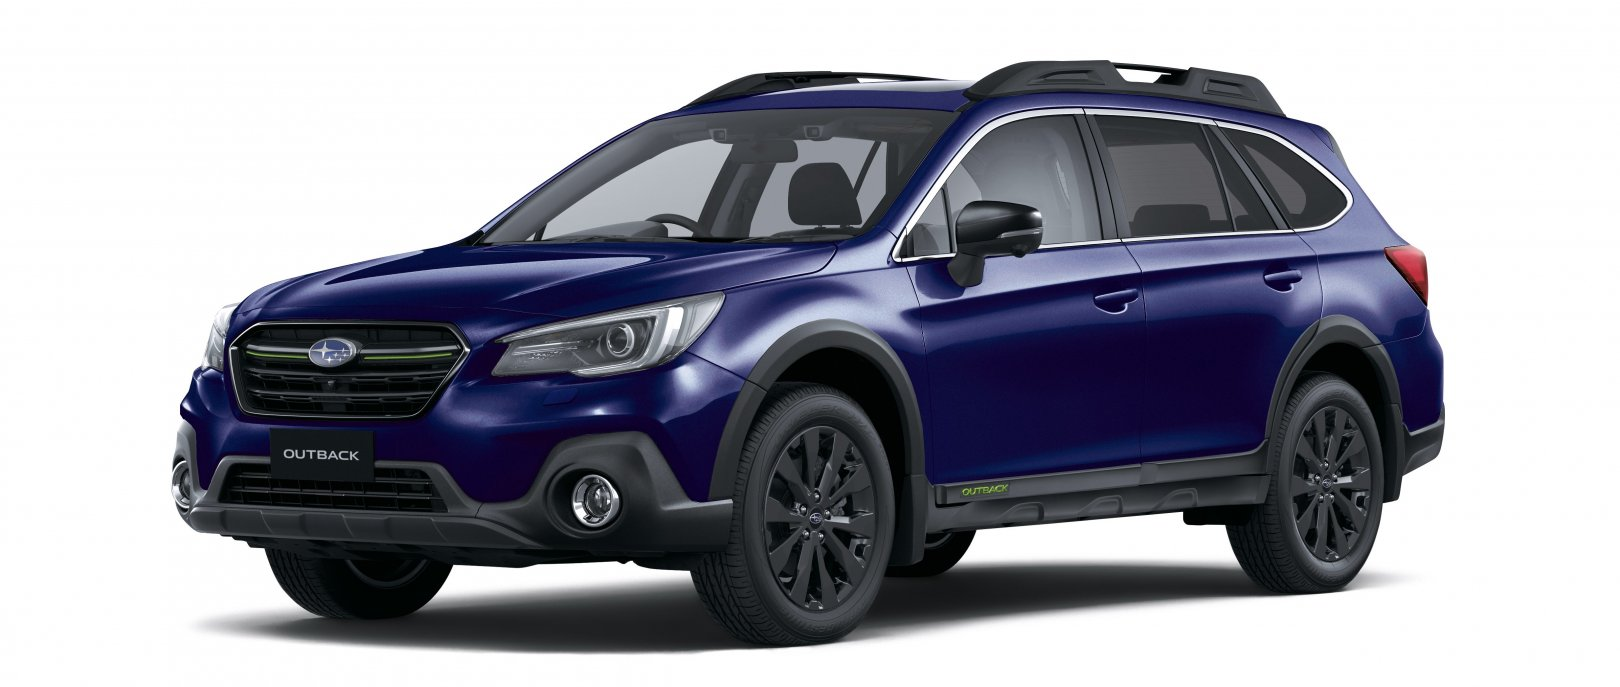 20Outback X_DarkBluePearl.